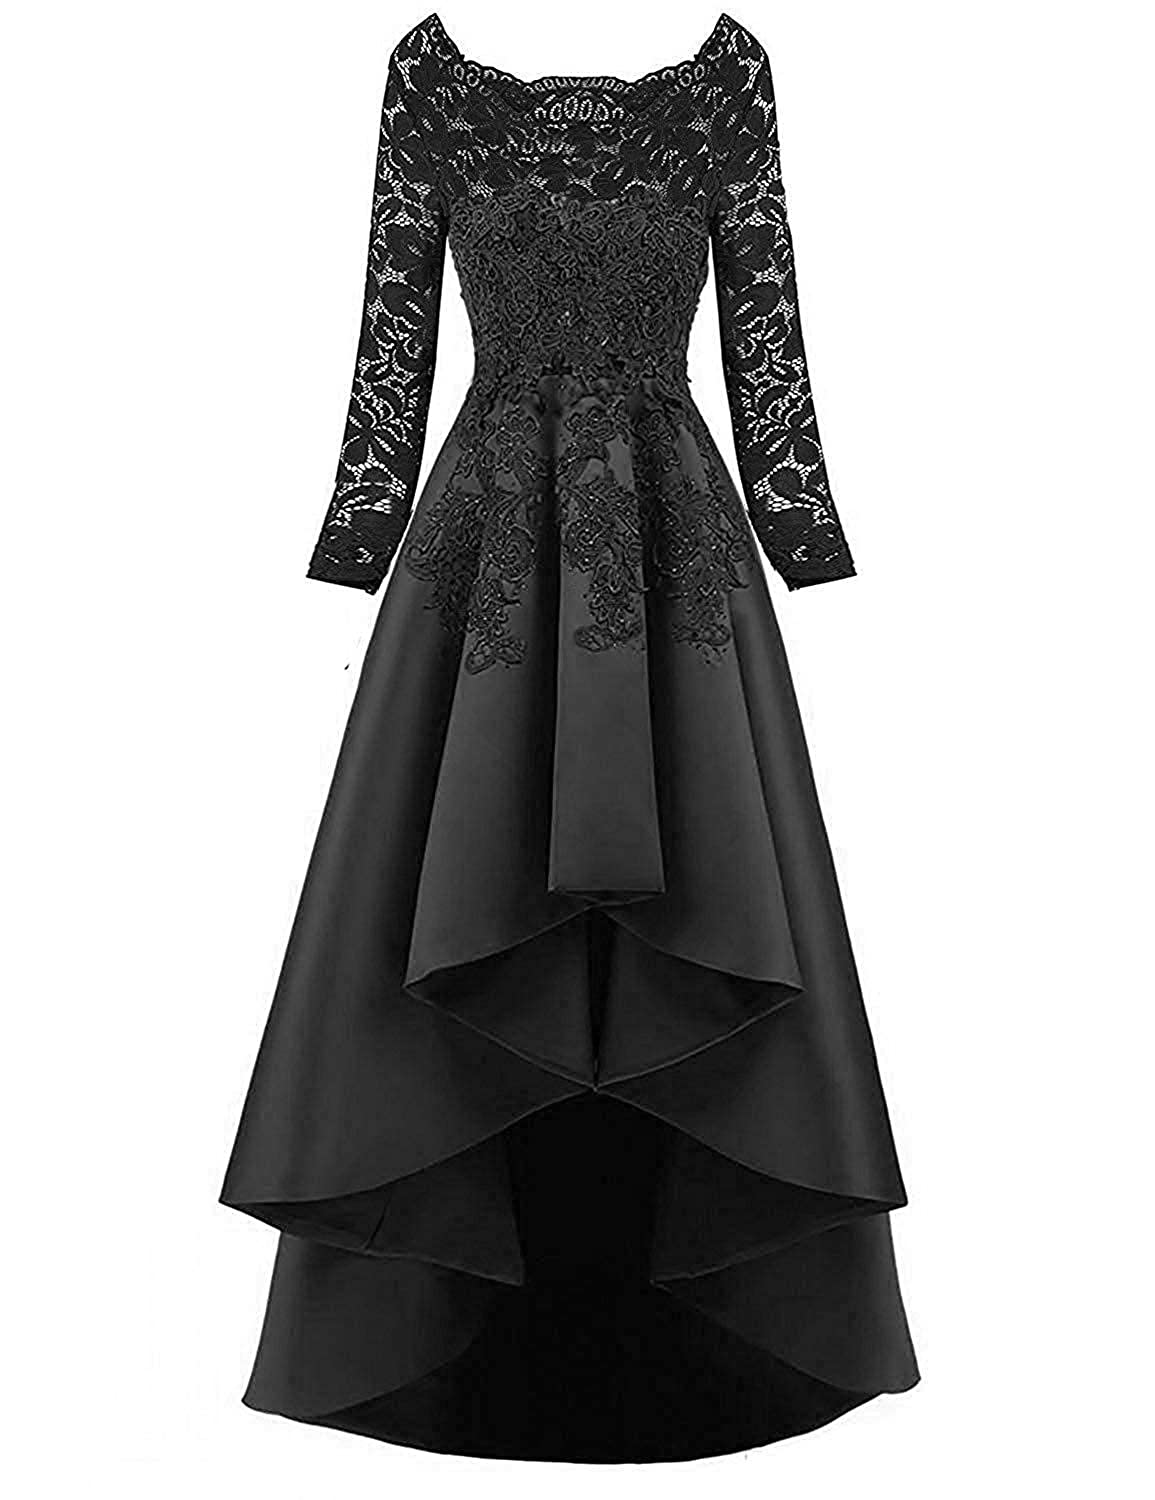 Rieshaneea Long Evening Dresses Lace Full Sleeves Formal Gown